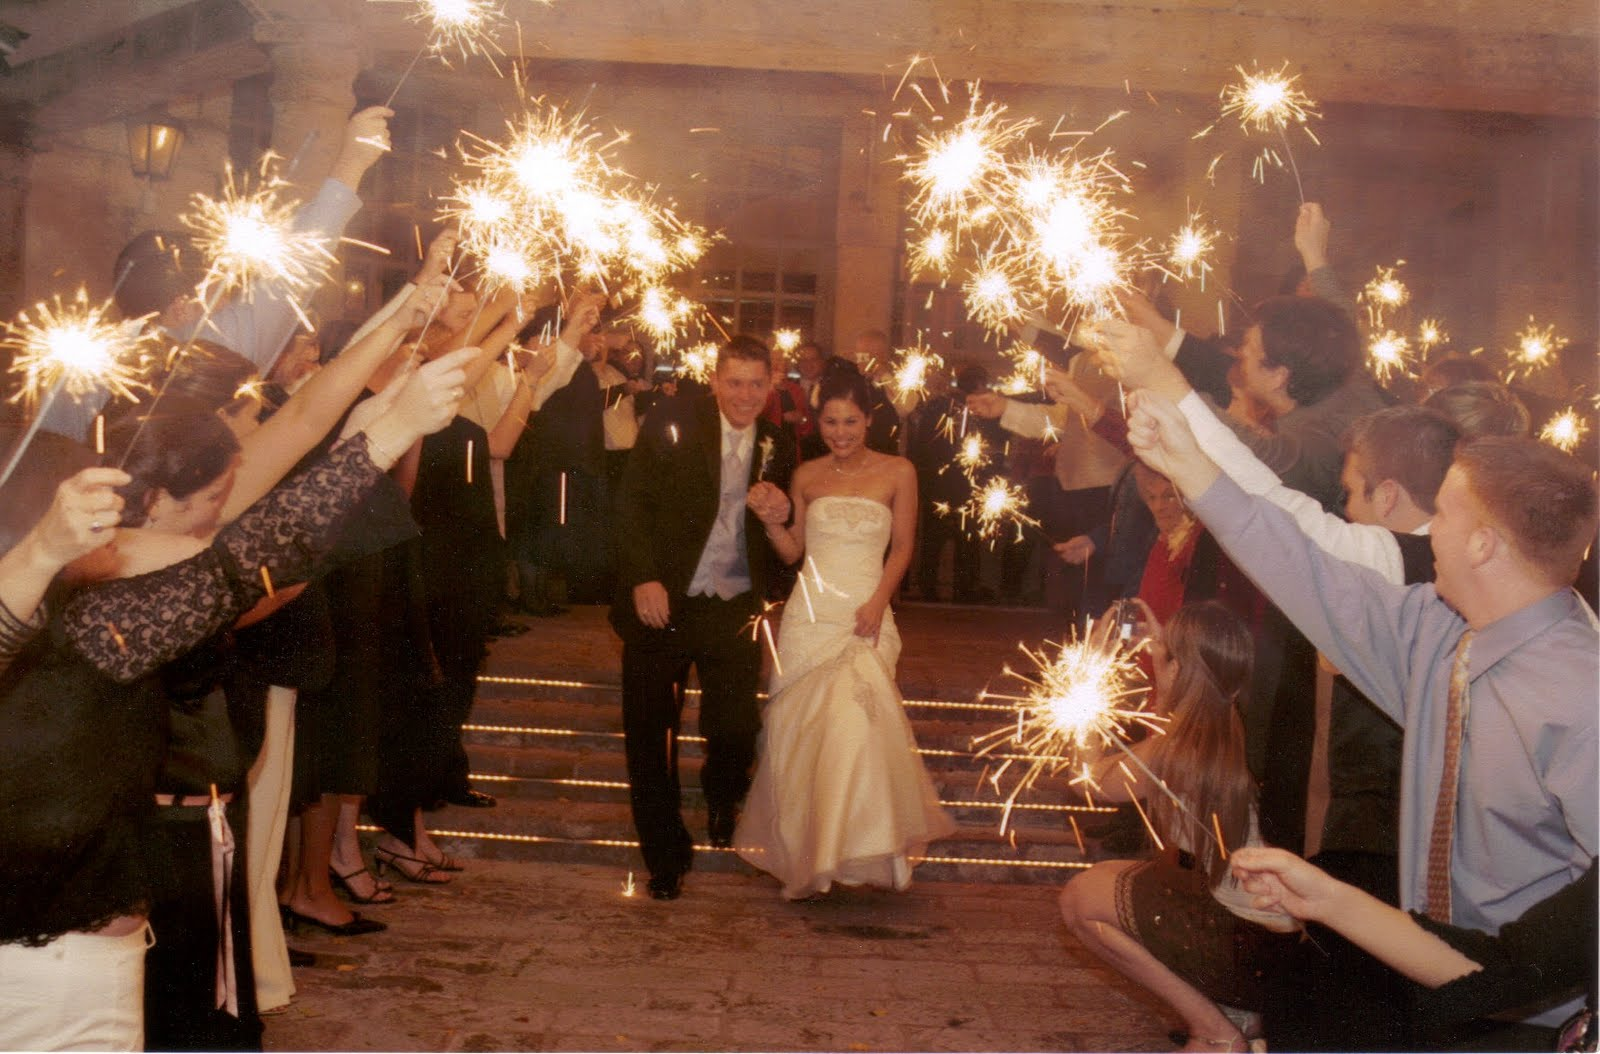 Sparklers For Wedding.Wedding Sparklers Light Up The Night Bliss Events Mexico